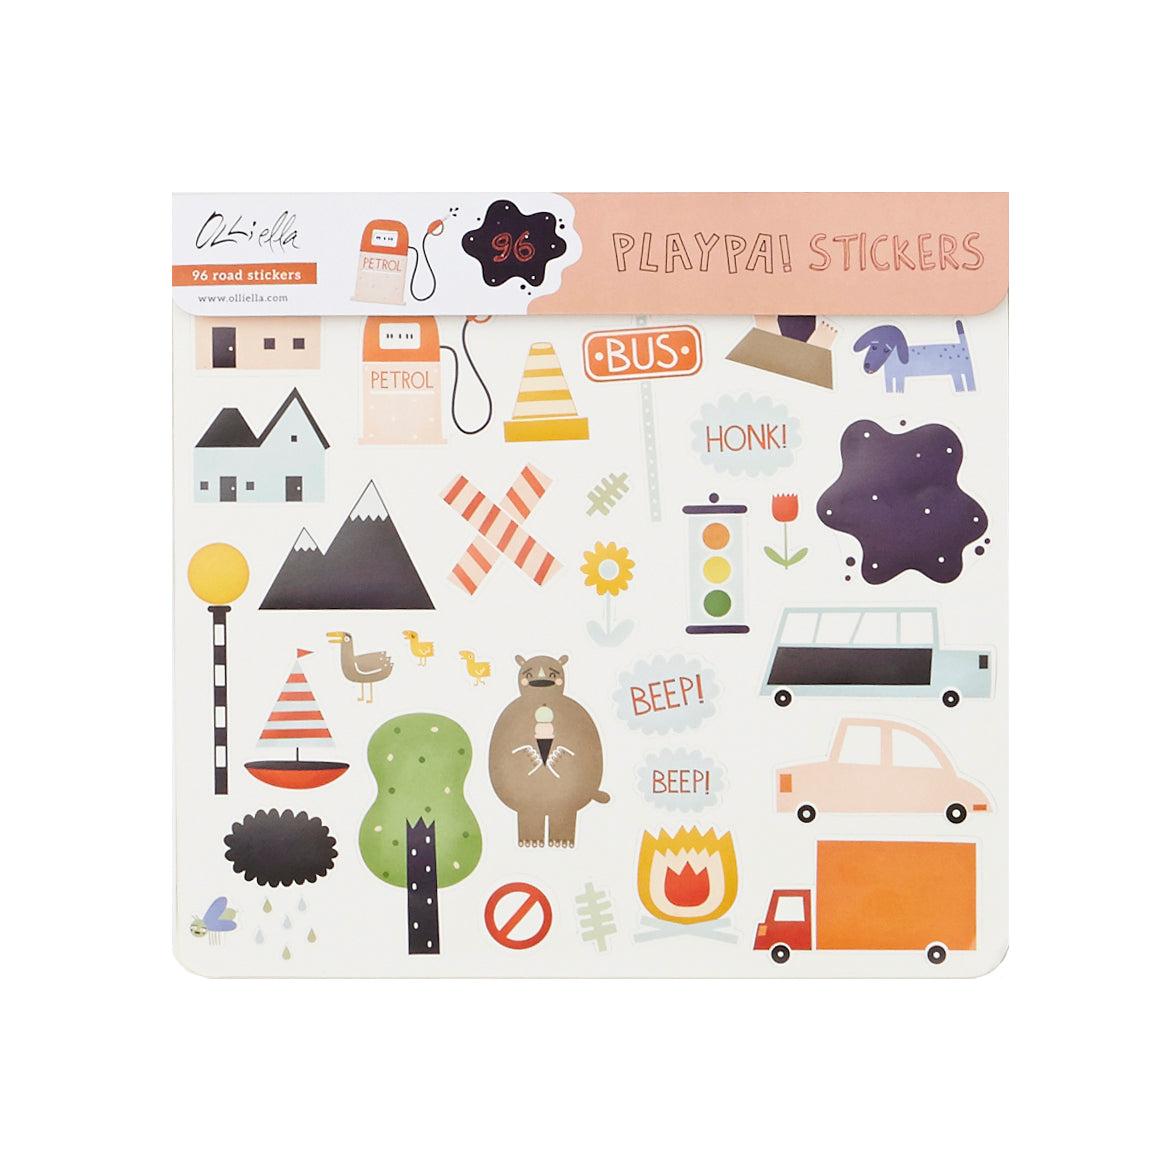 playpa stickers (road)